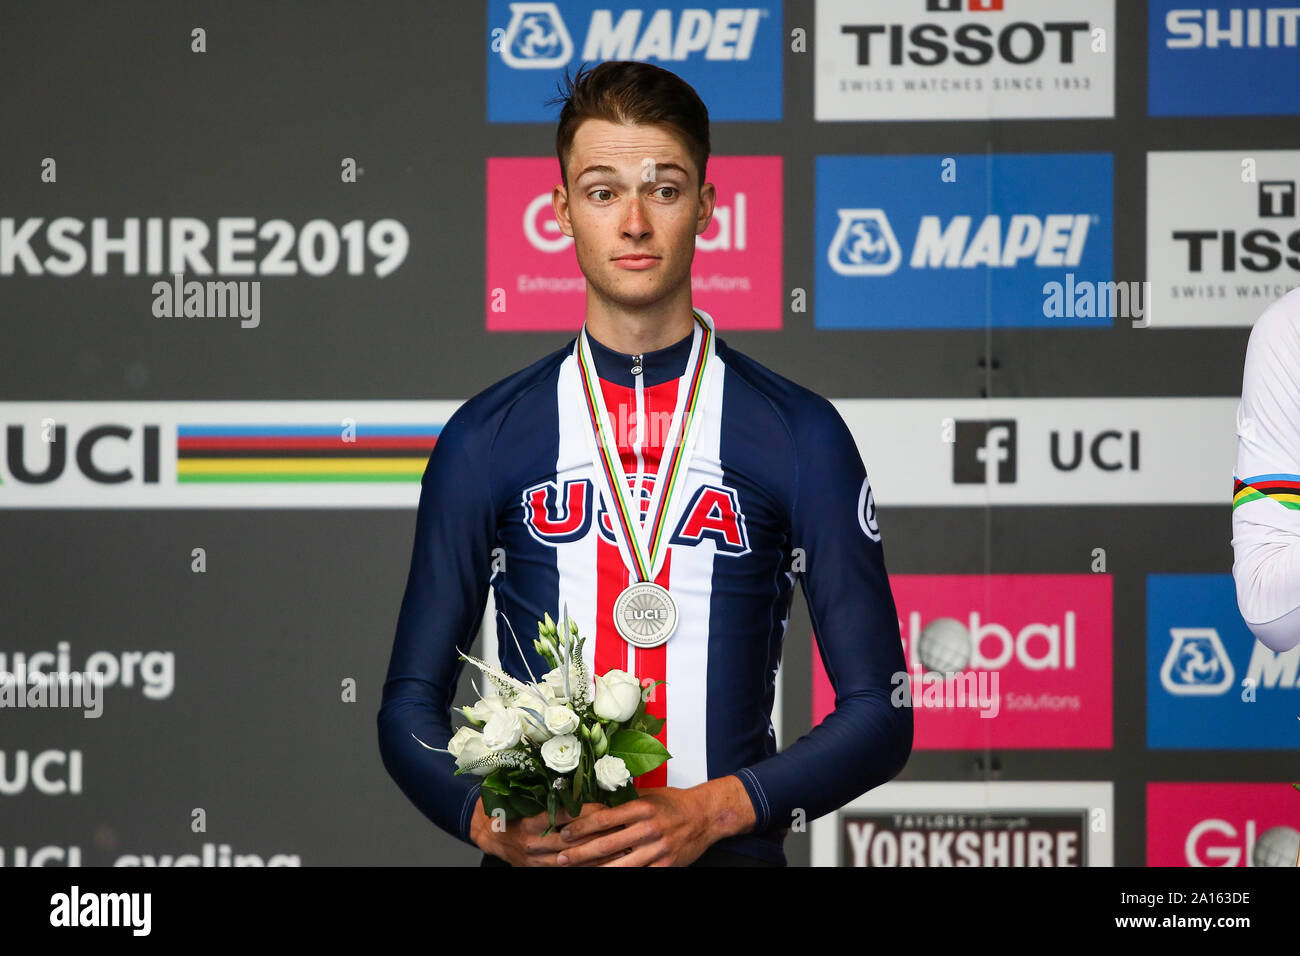 Harrogate, UK. 24th September 2019. Ian Garrison of the USA takes ilver in the 2019 UCI Road World Championships Mens Under 23 Elite Individual Time Trial. September 24, 2019 Credit Dan-Cooke/Alamy Live News Stock Photo